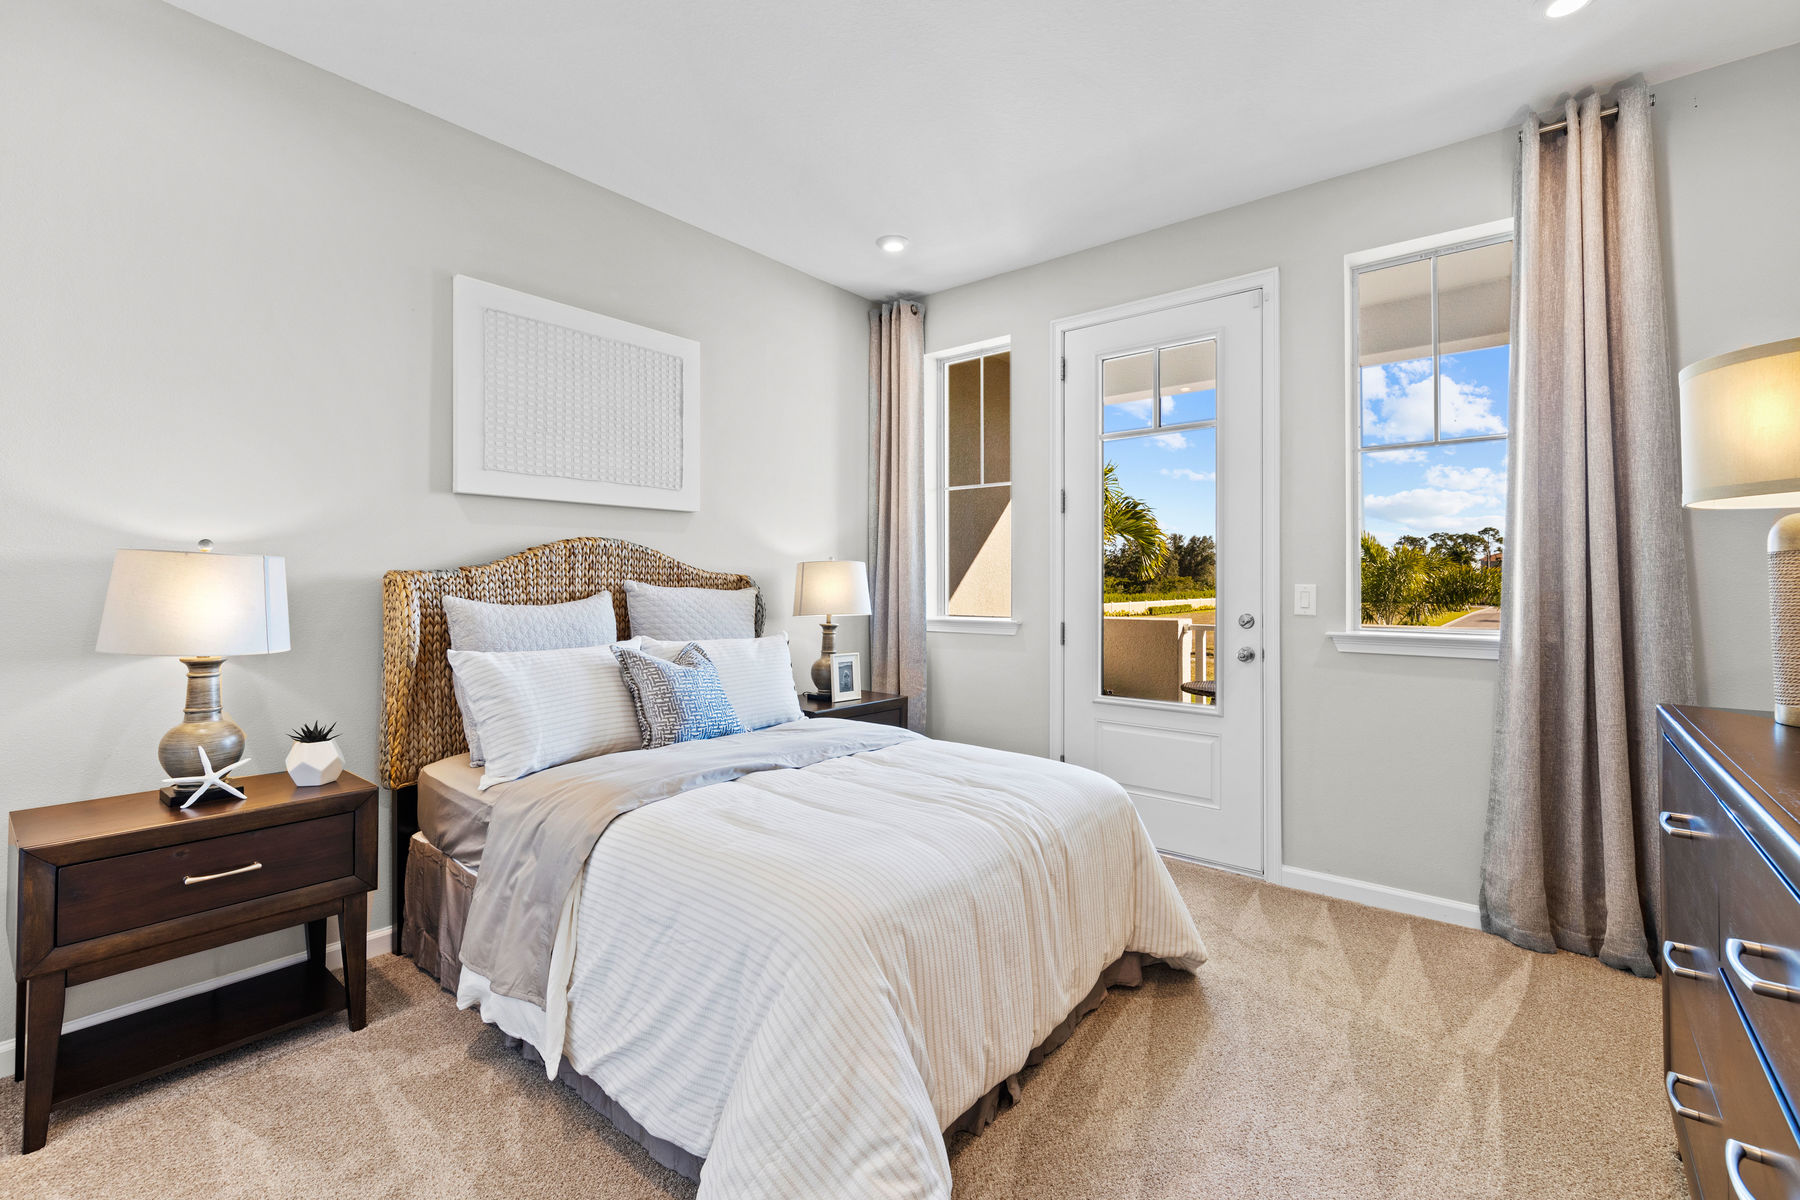 Seabright Plan Bedroom at Arboretum in Naples Florida by Mattamy Homes